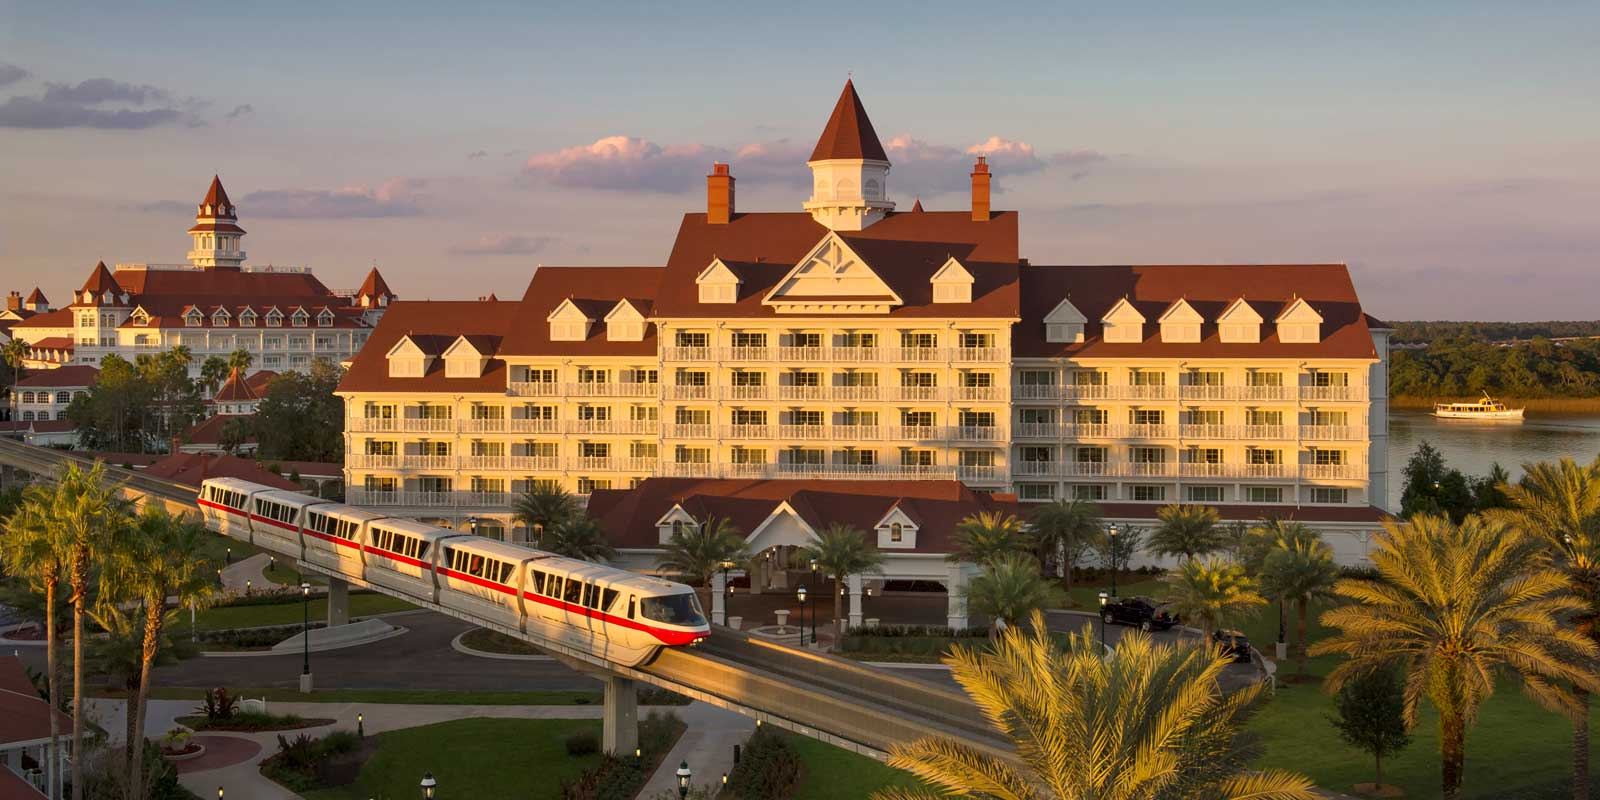 Landscape view of Grand Floridian resort at Disney World with the monorail in front and water at back.